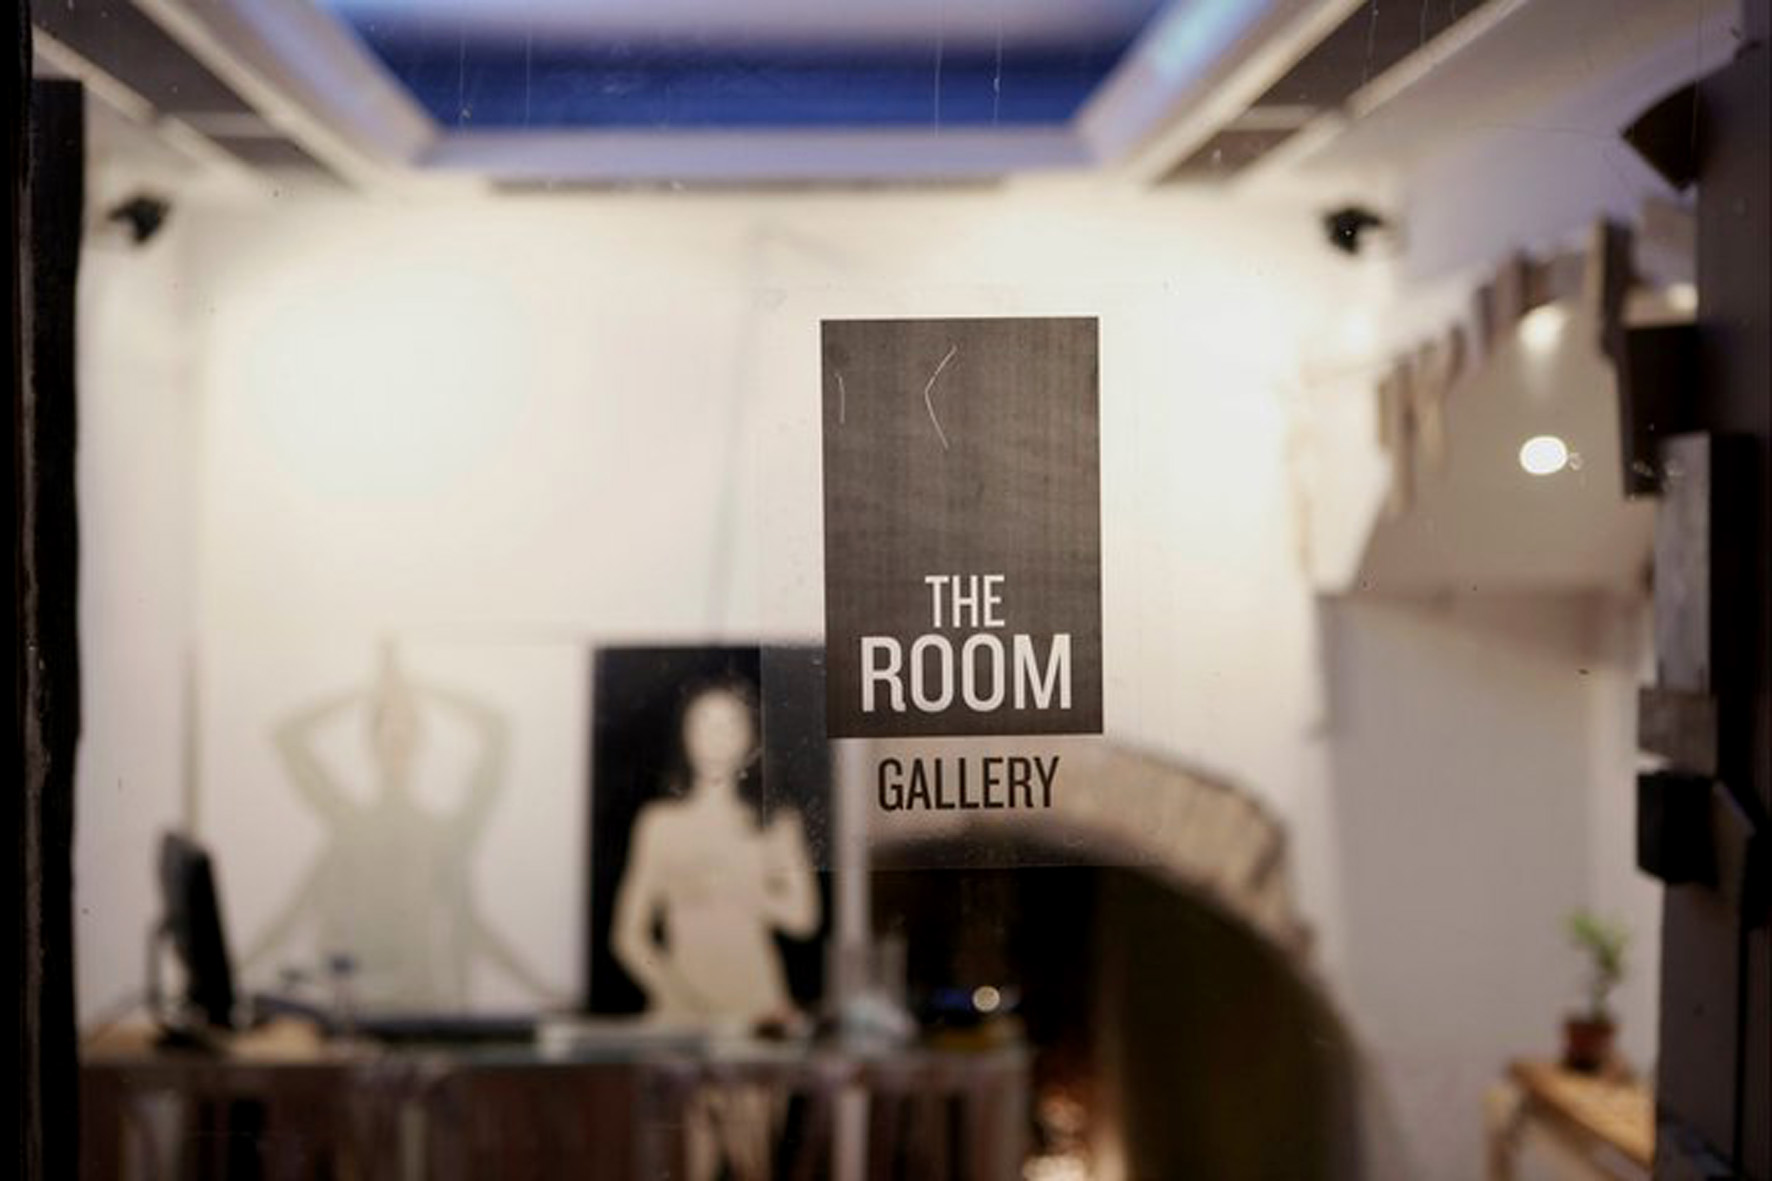 The Room Gallery 4